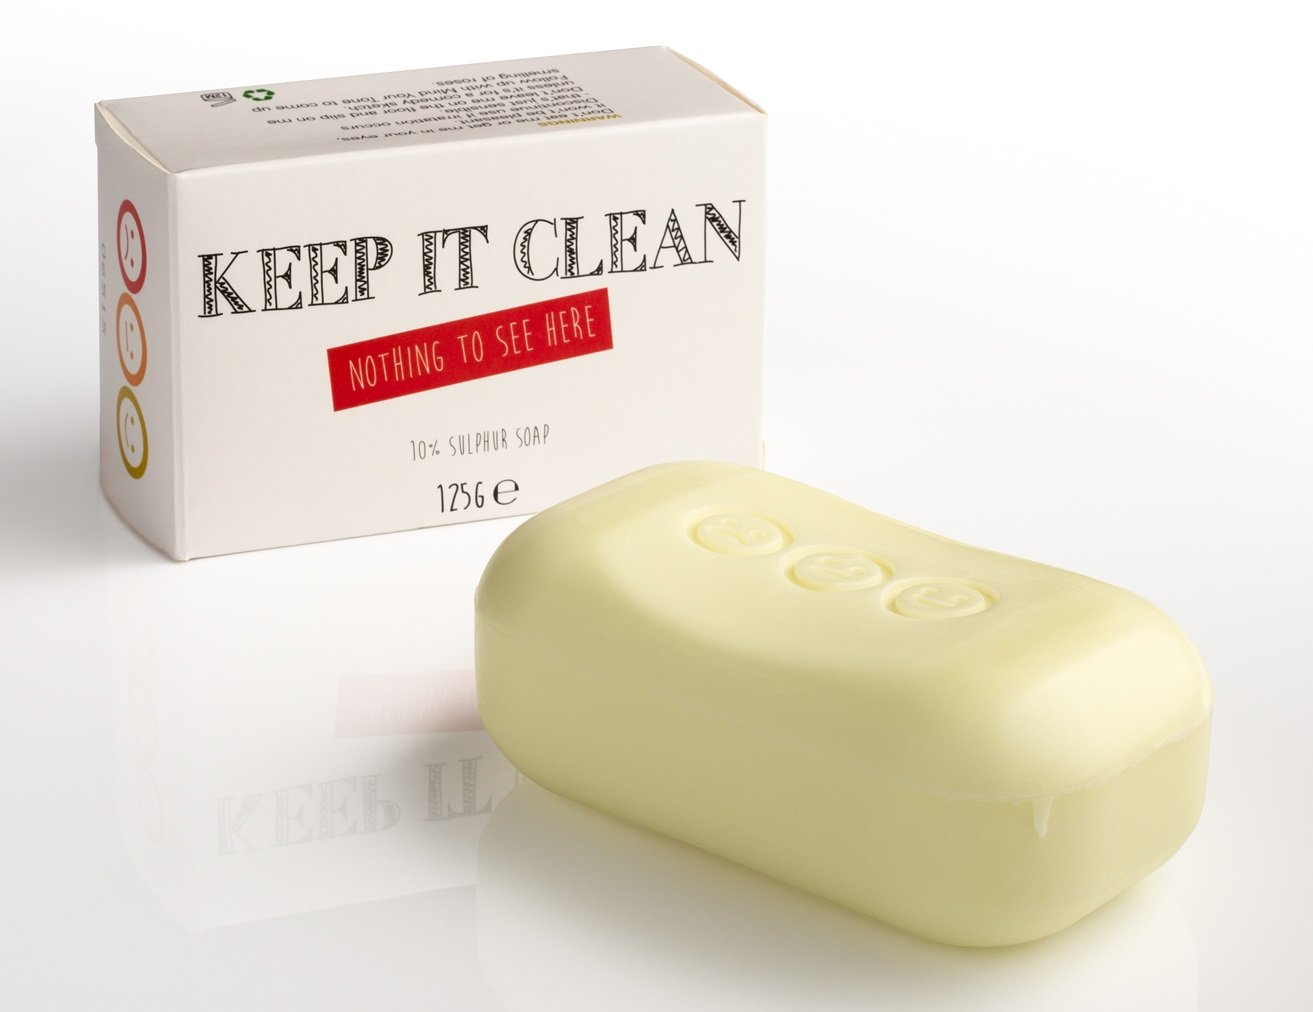 Keep it Clean – 10% Sulphur Soap – whytheface